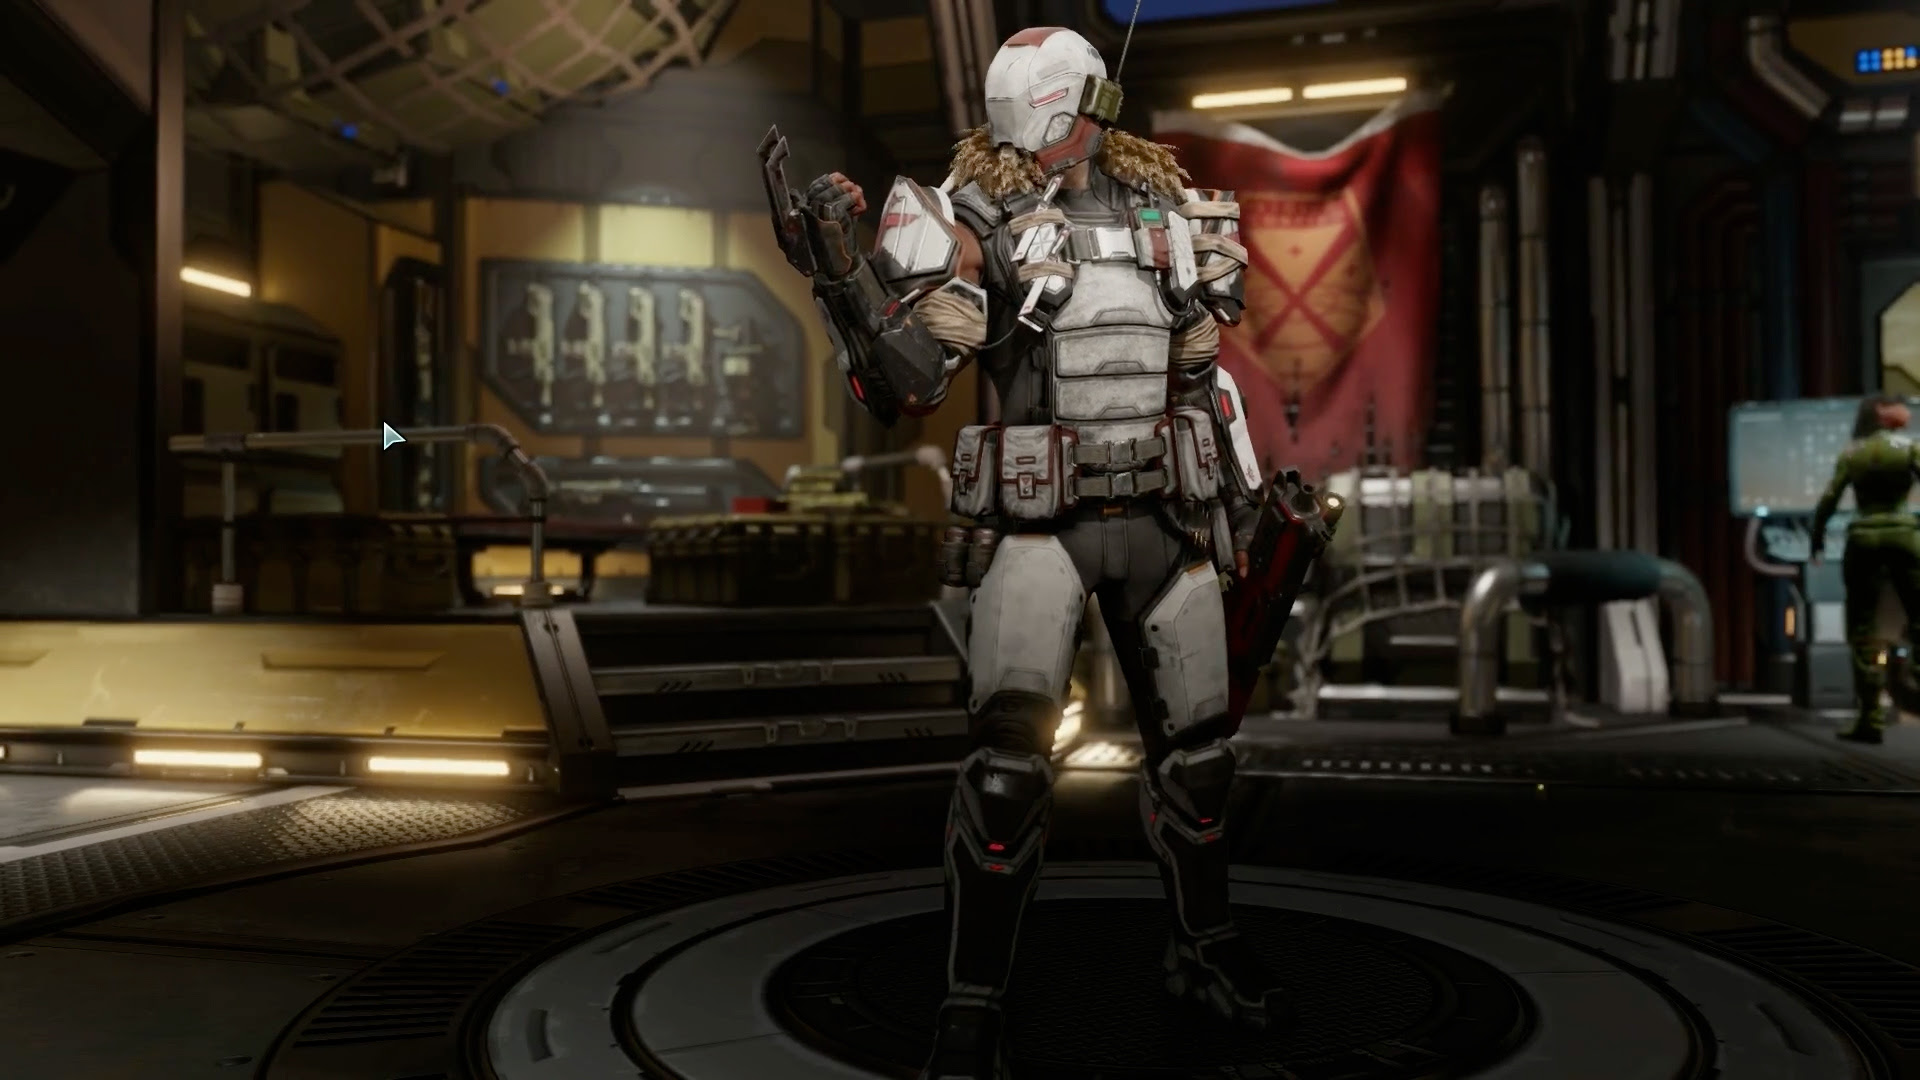 XCOM 2: War of the Chosen's Skirmishers are my kind of faction screenshot